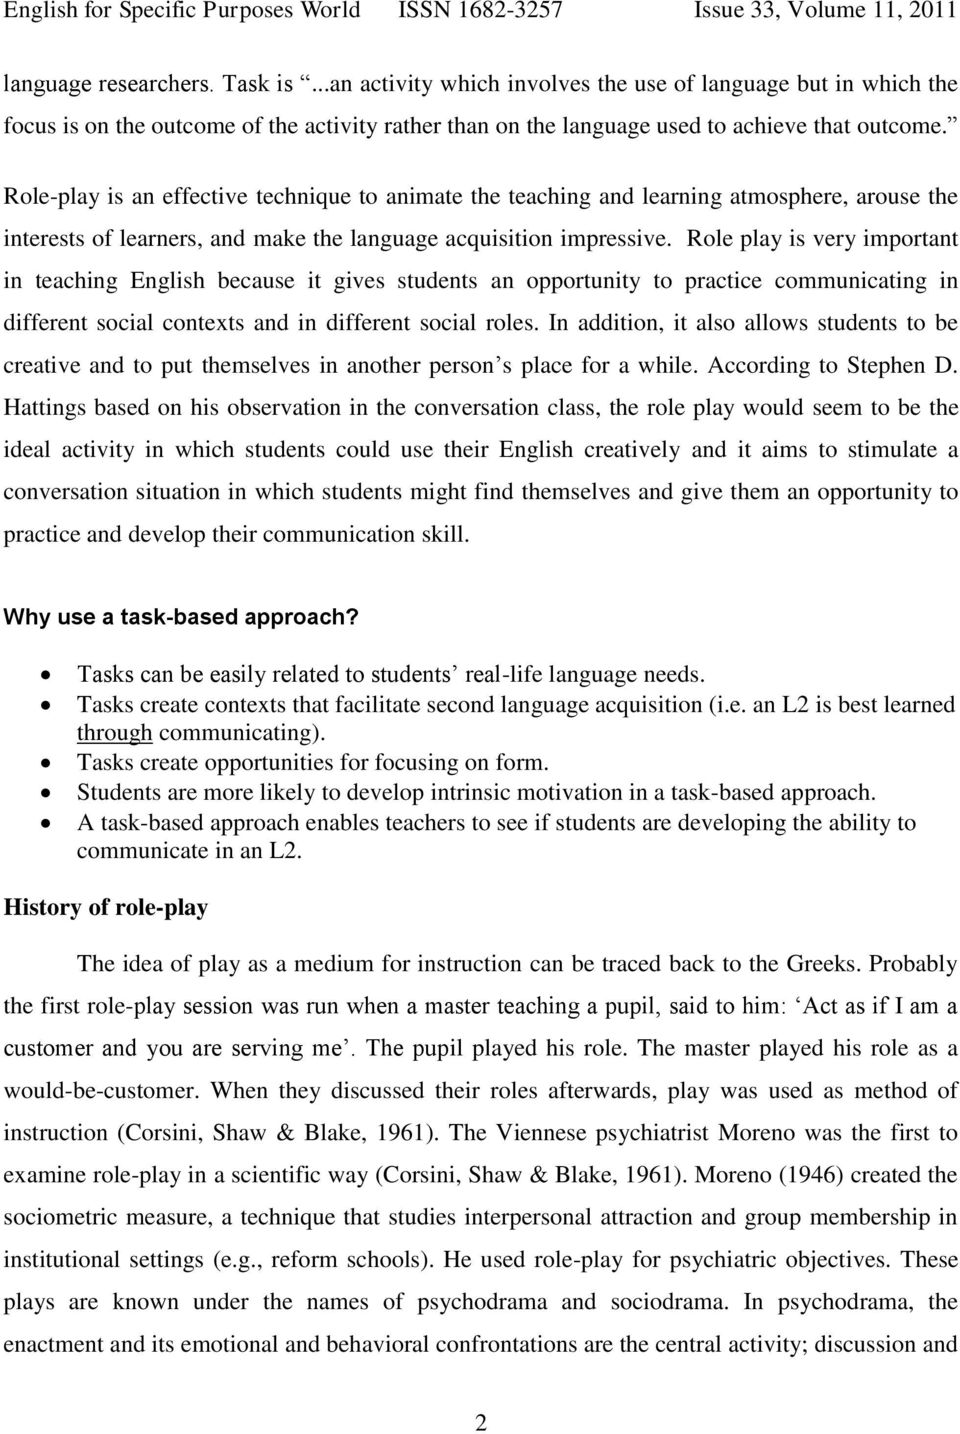 Second Language Acquisition through Task-based Approach Role